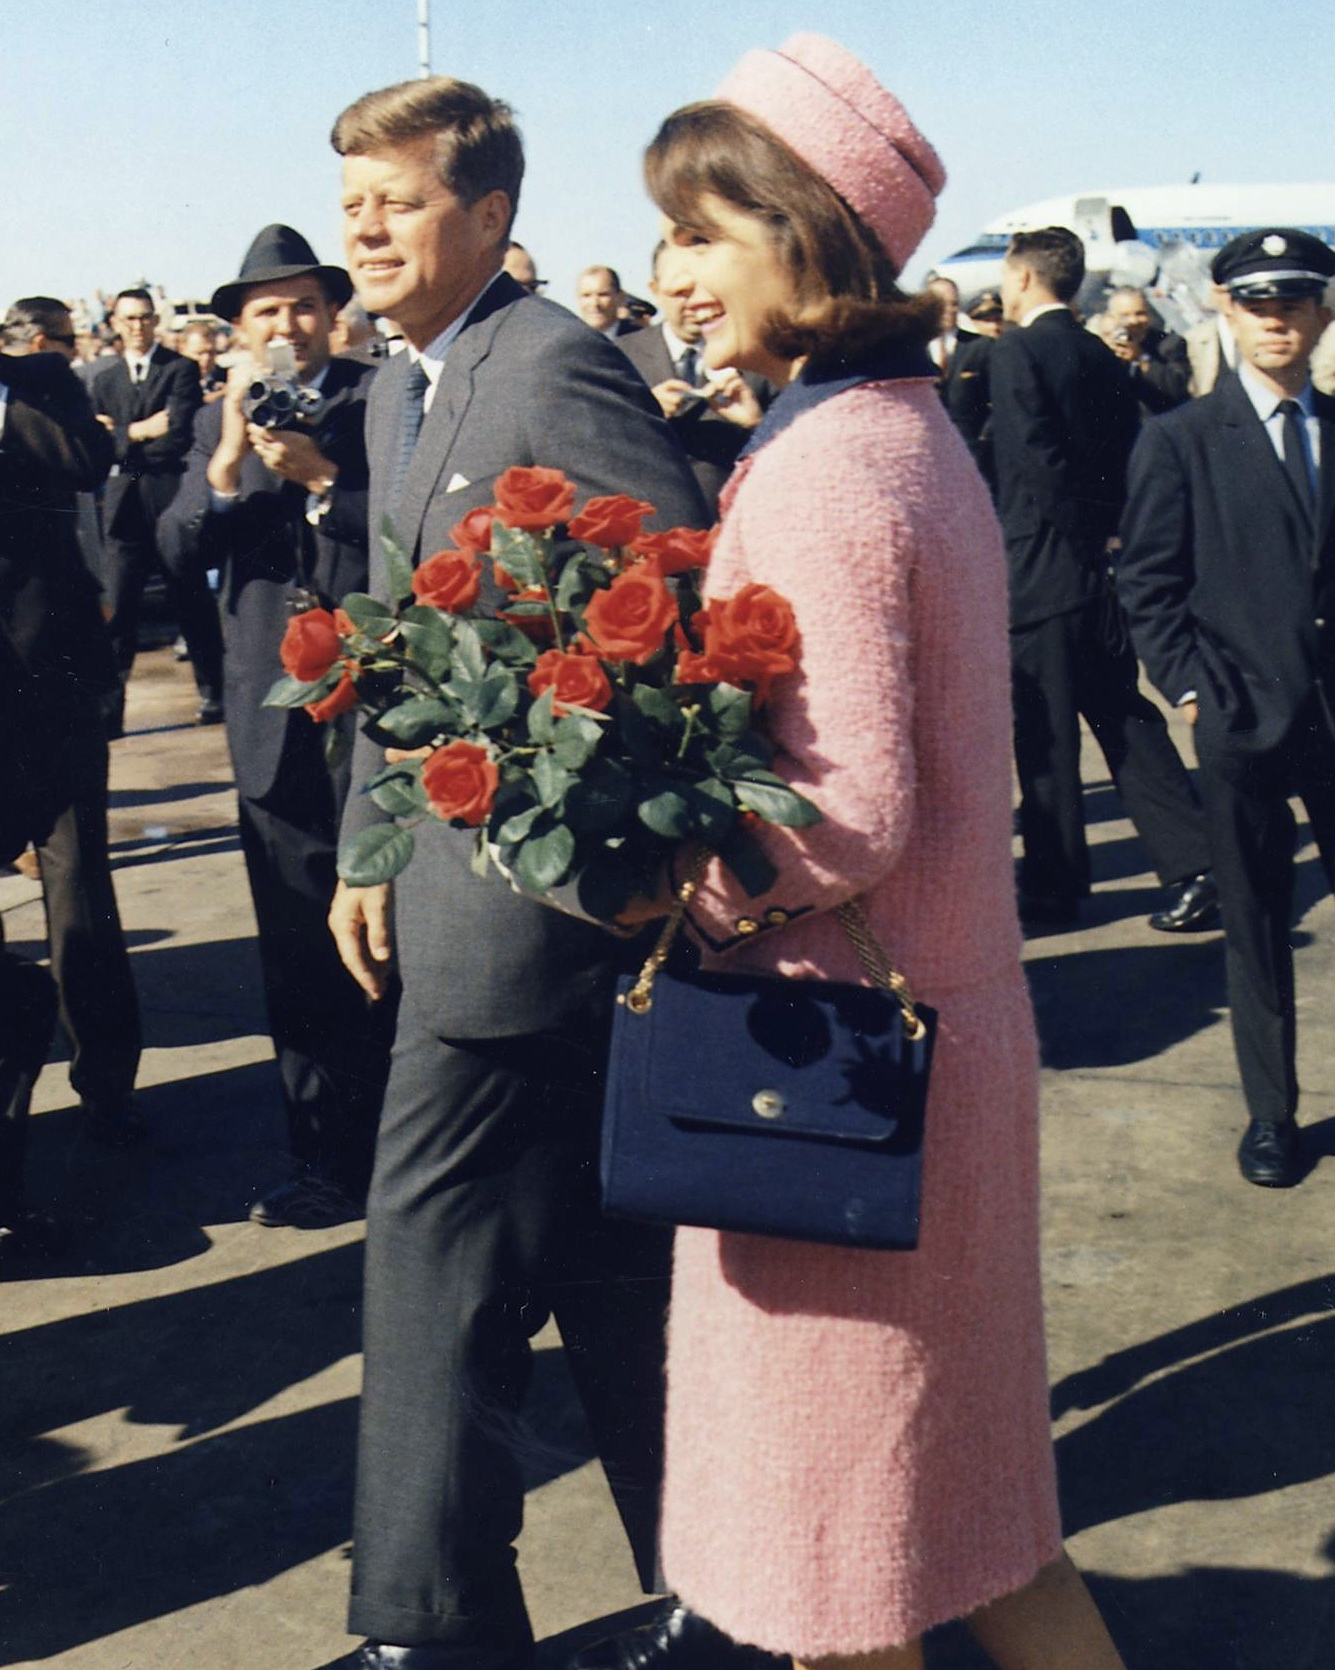 1a461137993 Pink Chanel suit of Jacqueline Bouvier Kennedy. Kennedys arrive at Dallas  11-22-63 (Cropped).jpg